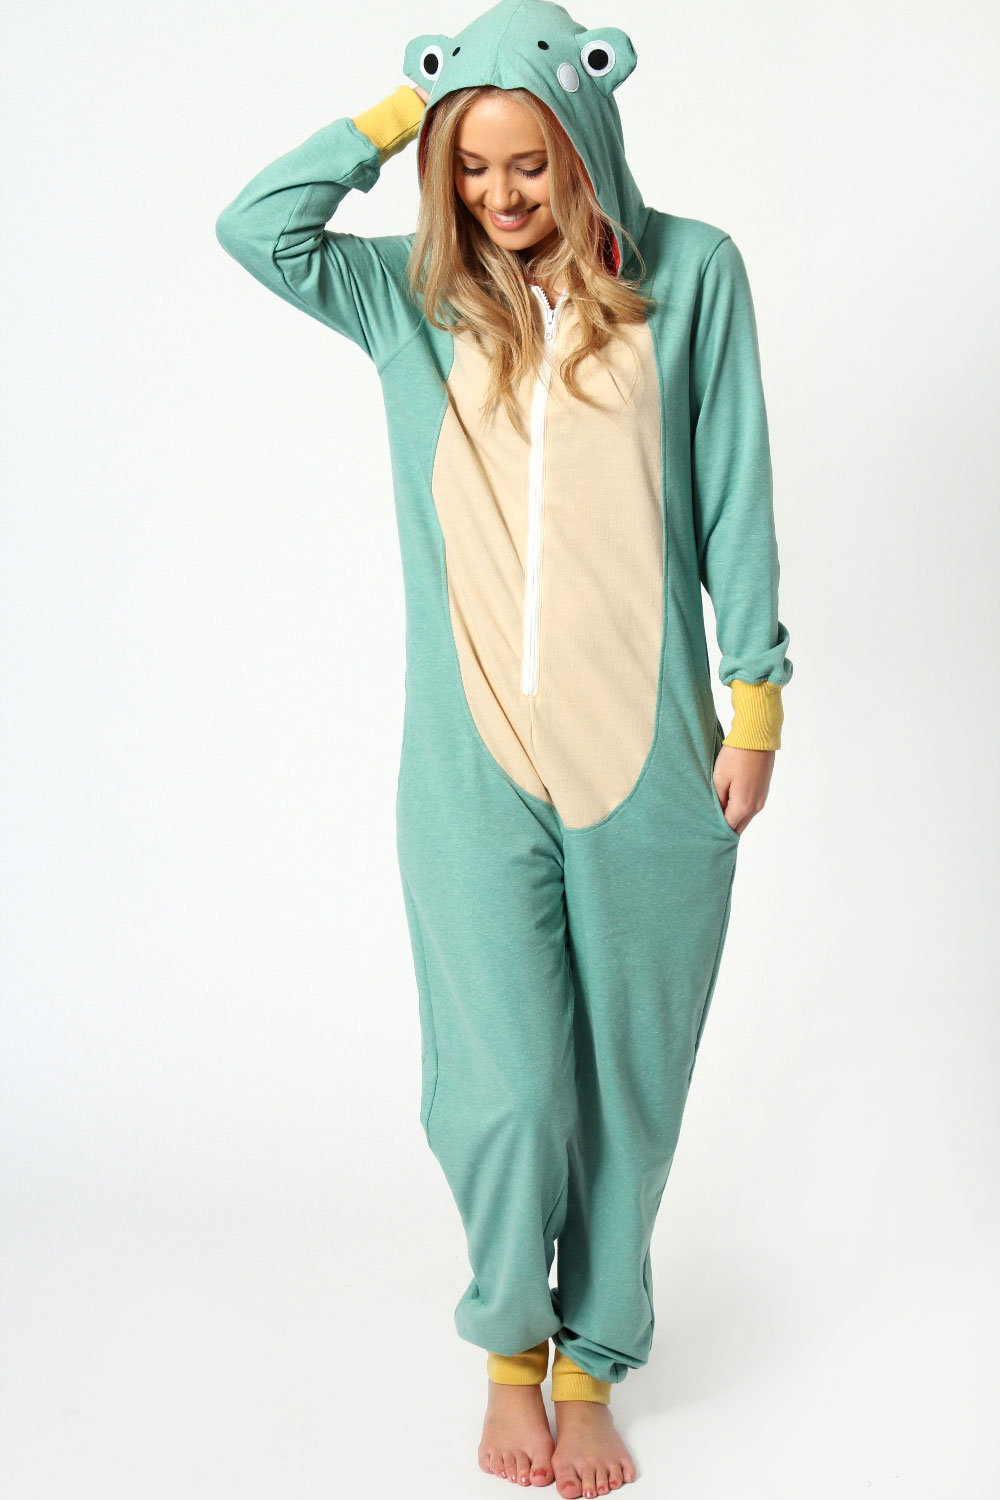 wilmergolding6jn1.gq has the best quality selection of onesies for adults. From unicorn onesies to sloth onesies, we stock only authentic SAZAC onesies from Japan.